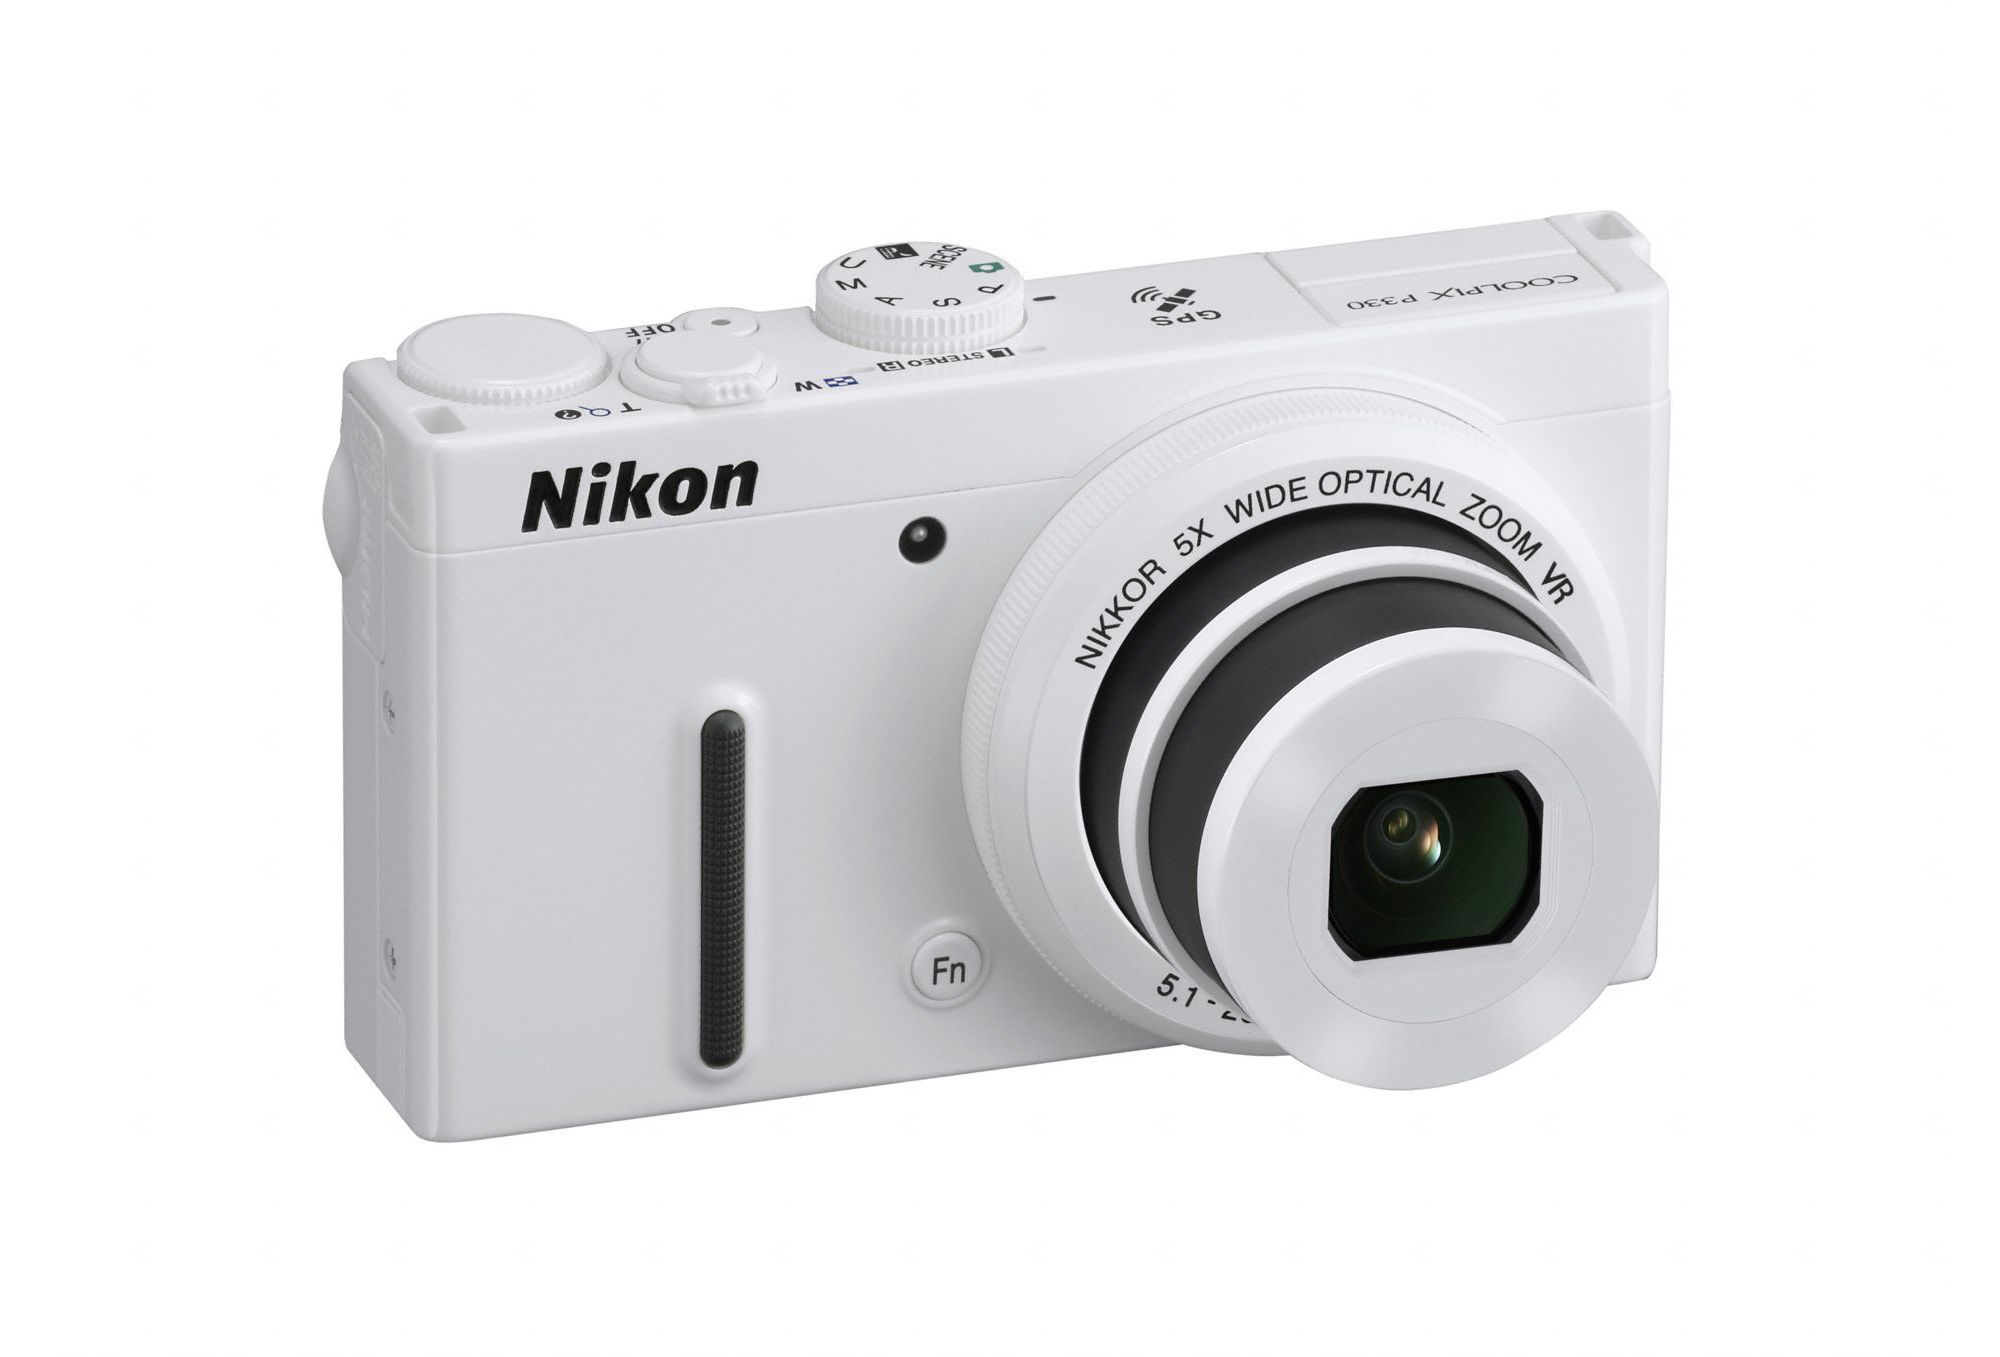 Nikon Coolpix P330 Camera White 12.2MP 5xZoom 3.0LCD FHD 24mm Wide Lens GPS